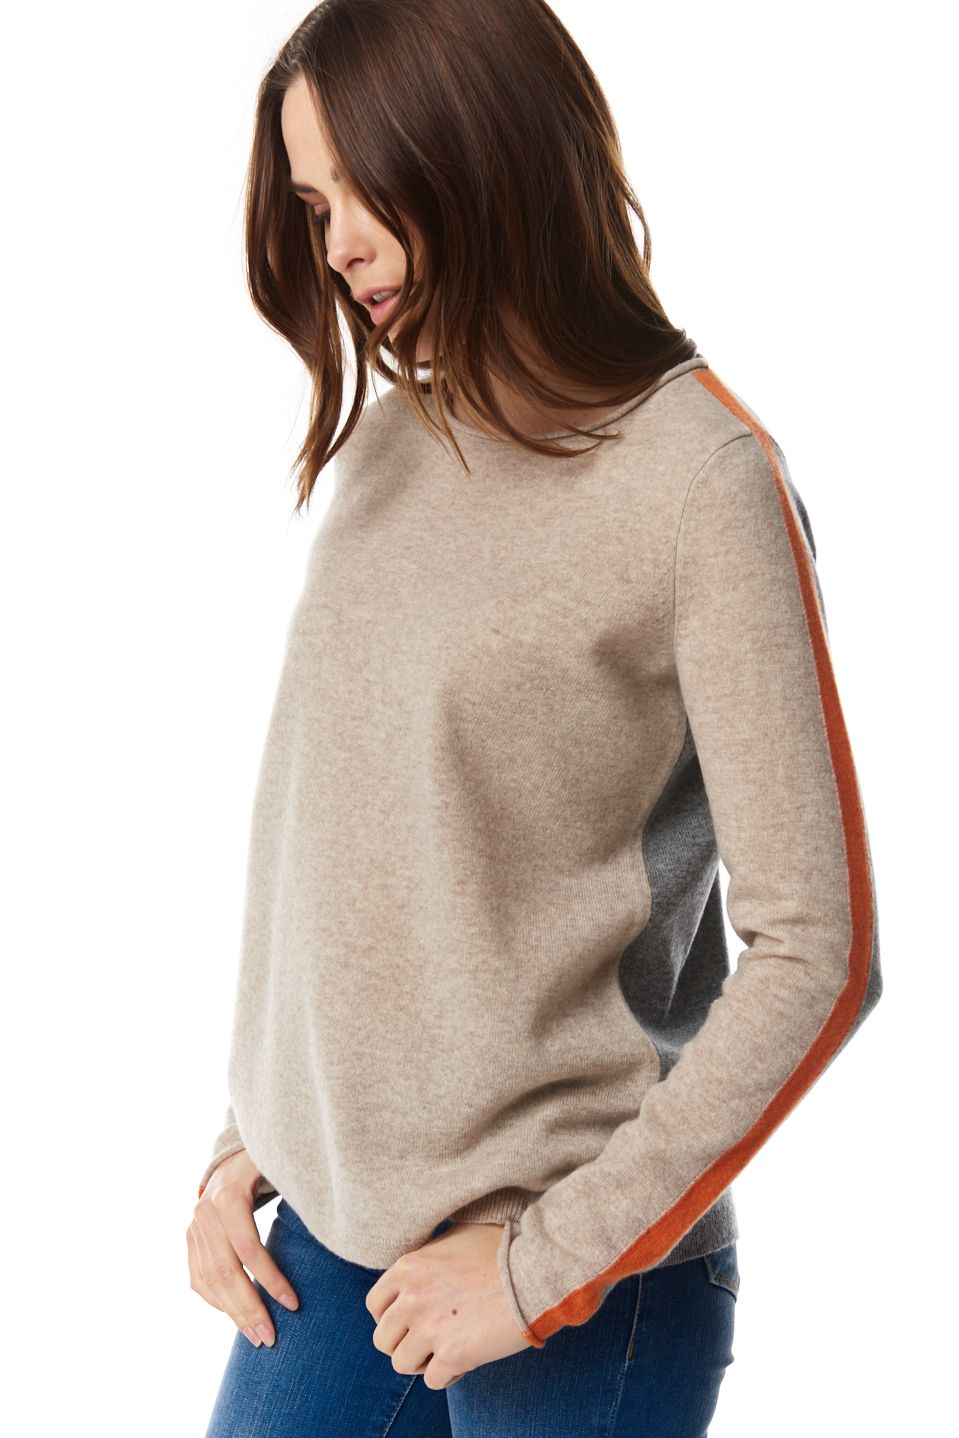 Three's Company Rolled Neck Sweater